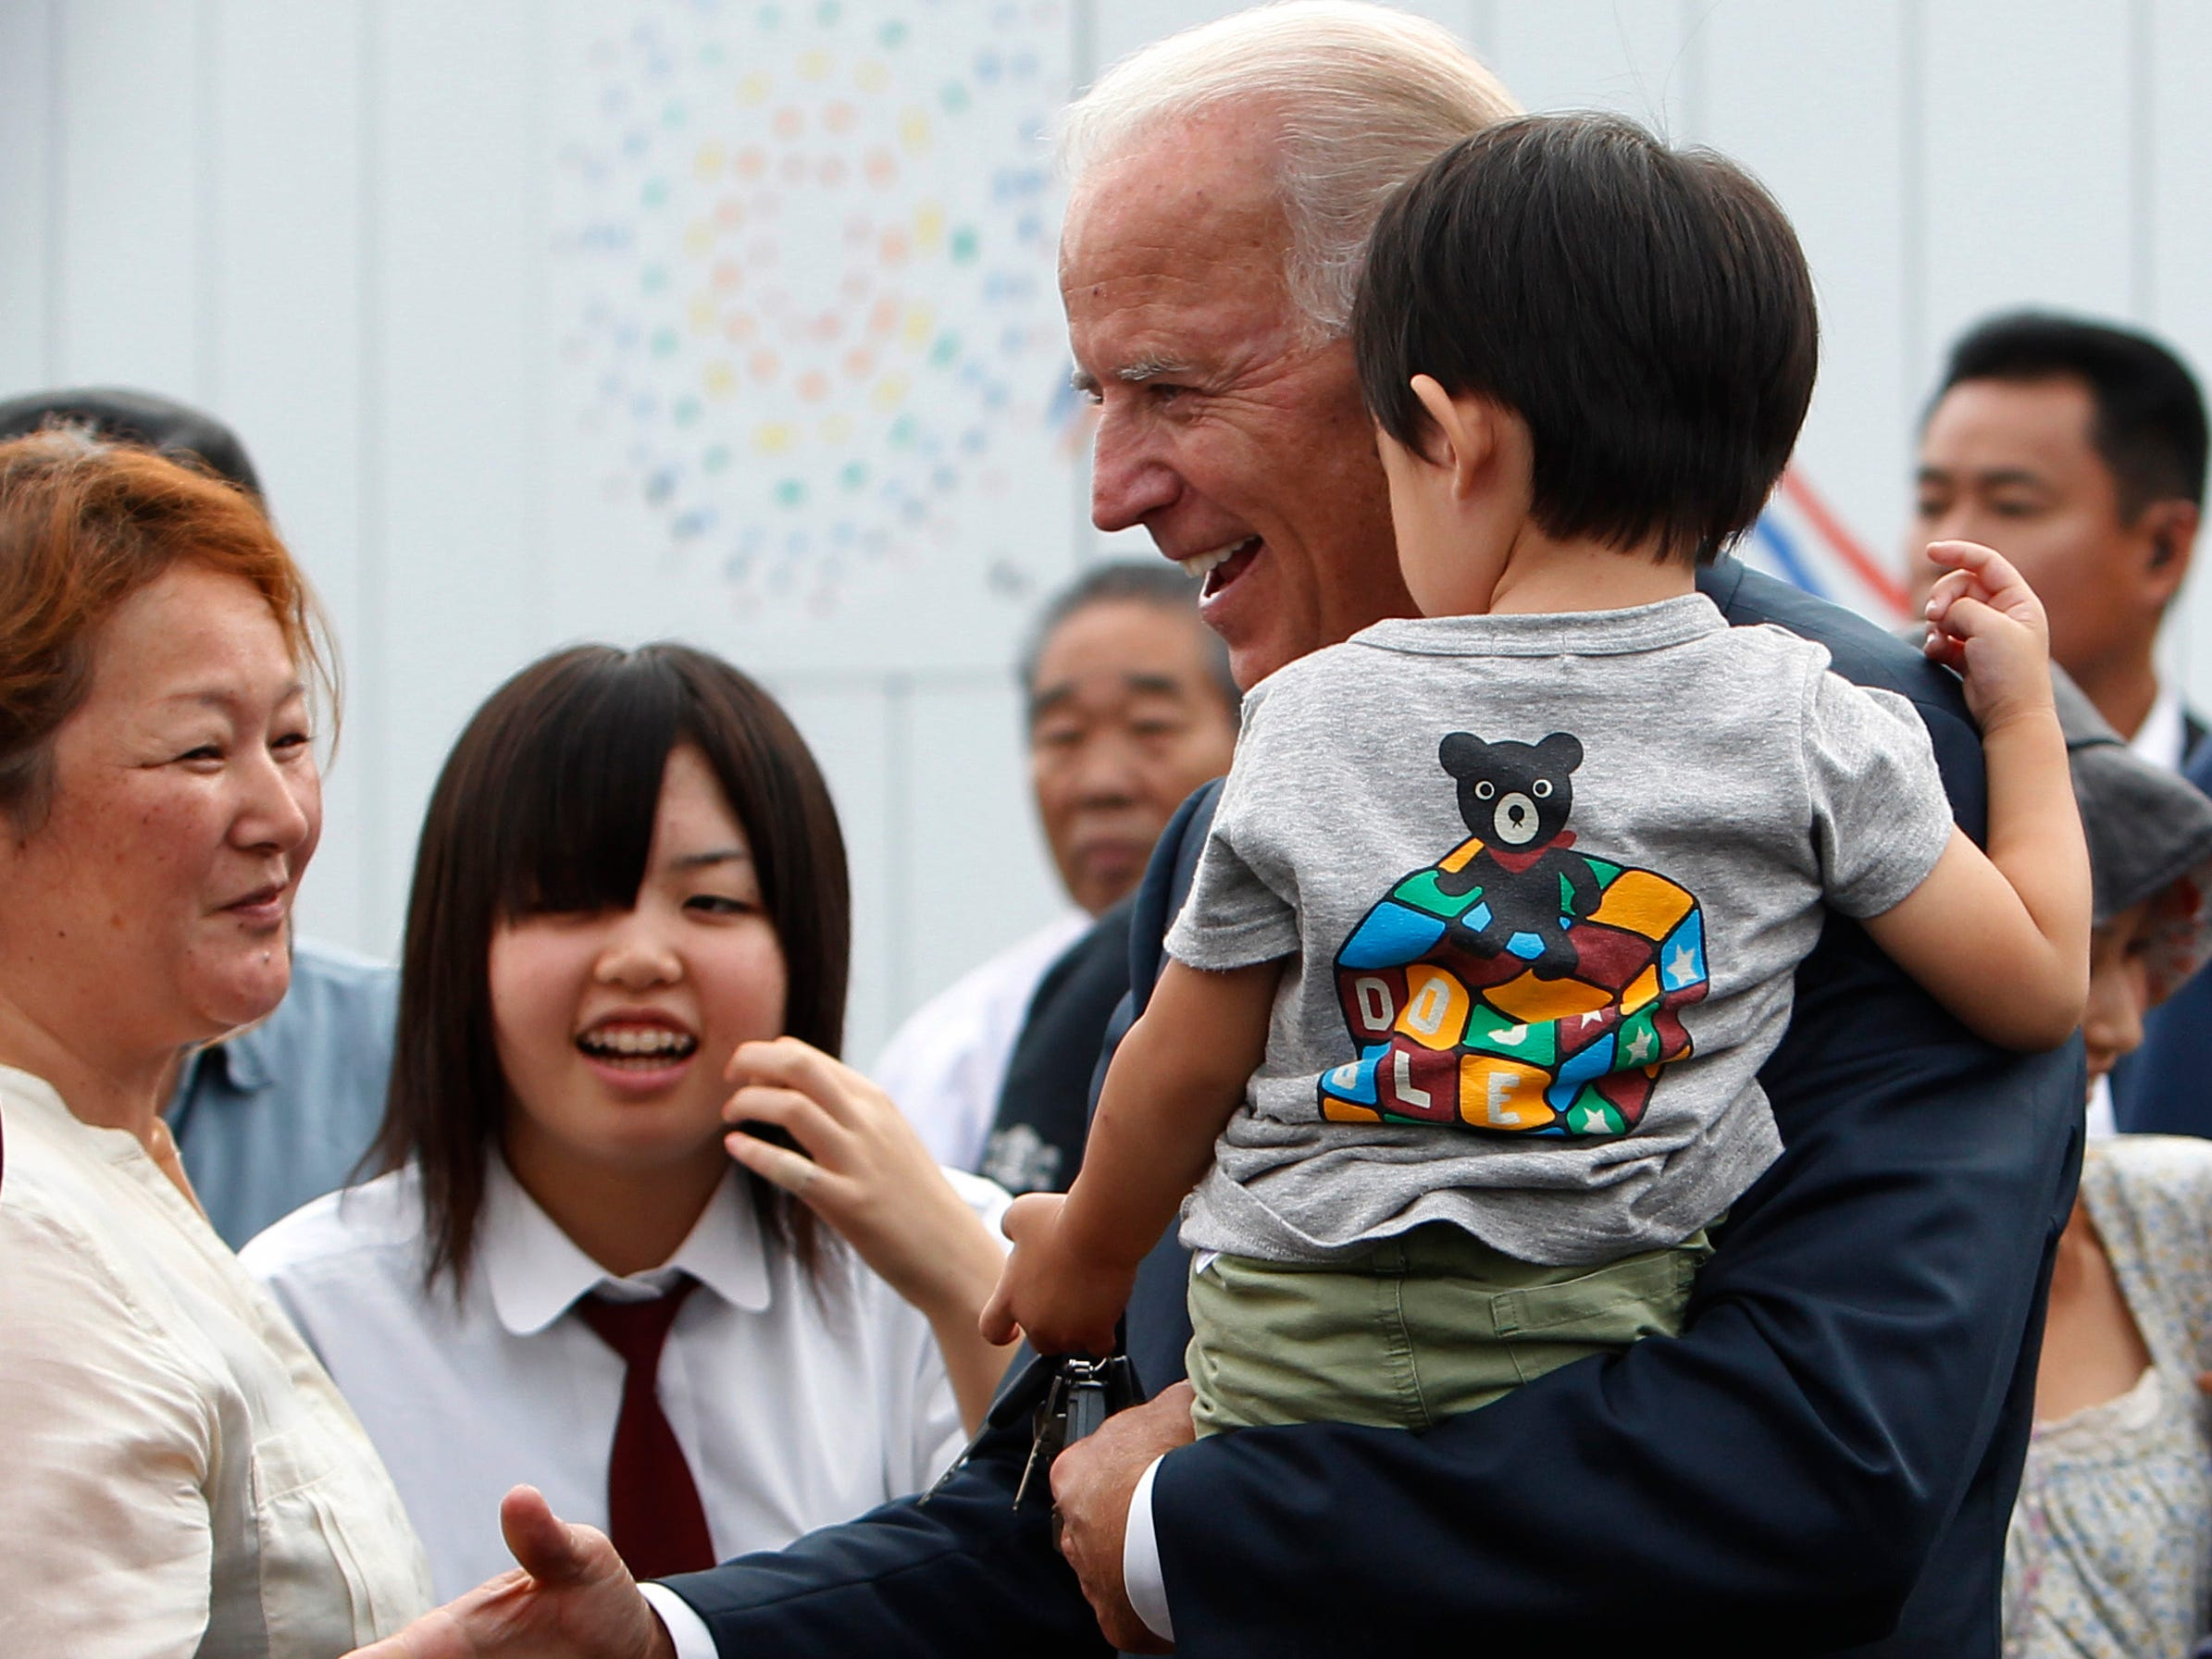 I was with Joe Biden when no one was looking, and he was always a champion for women